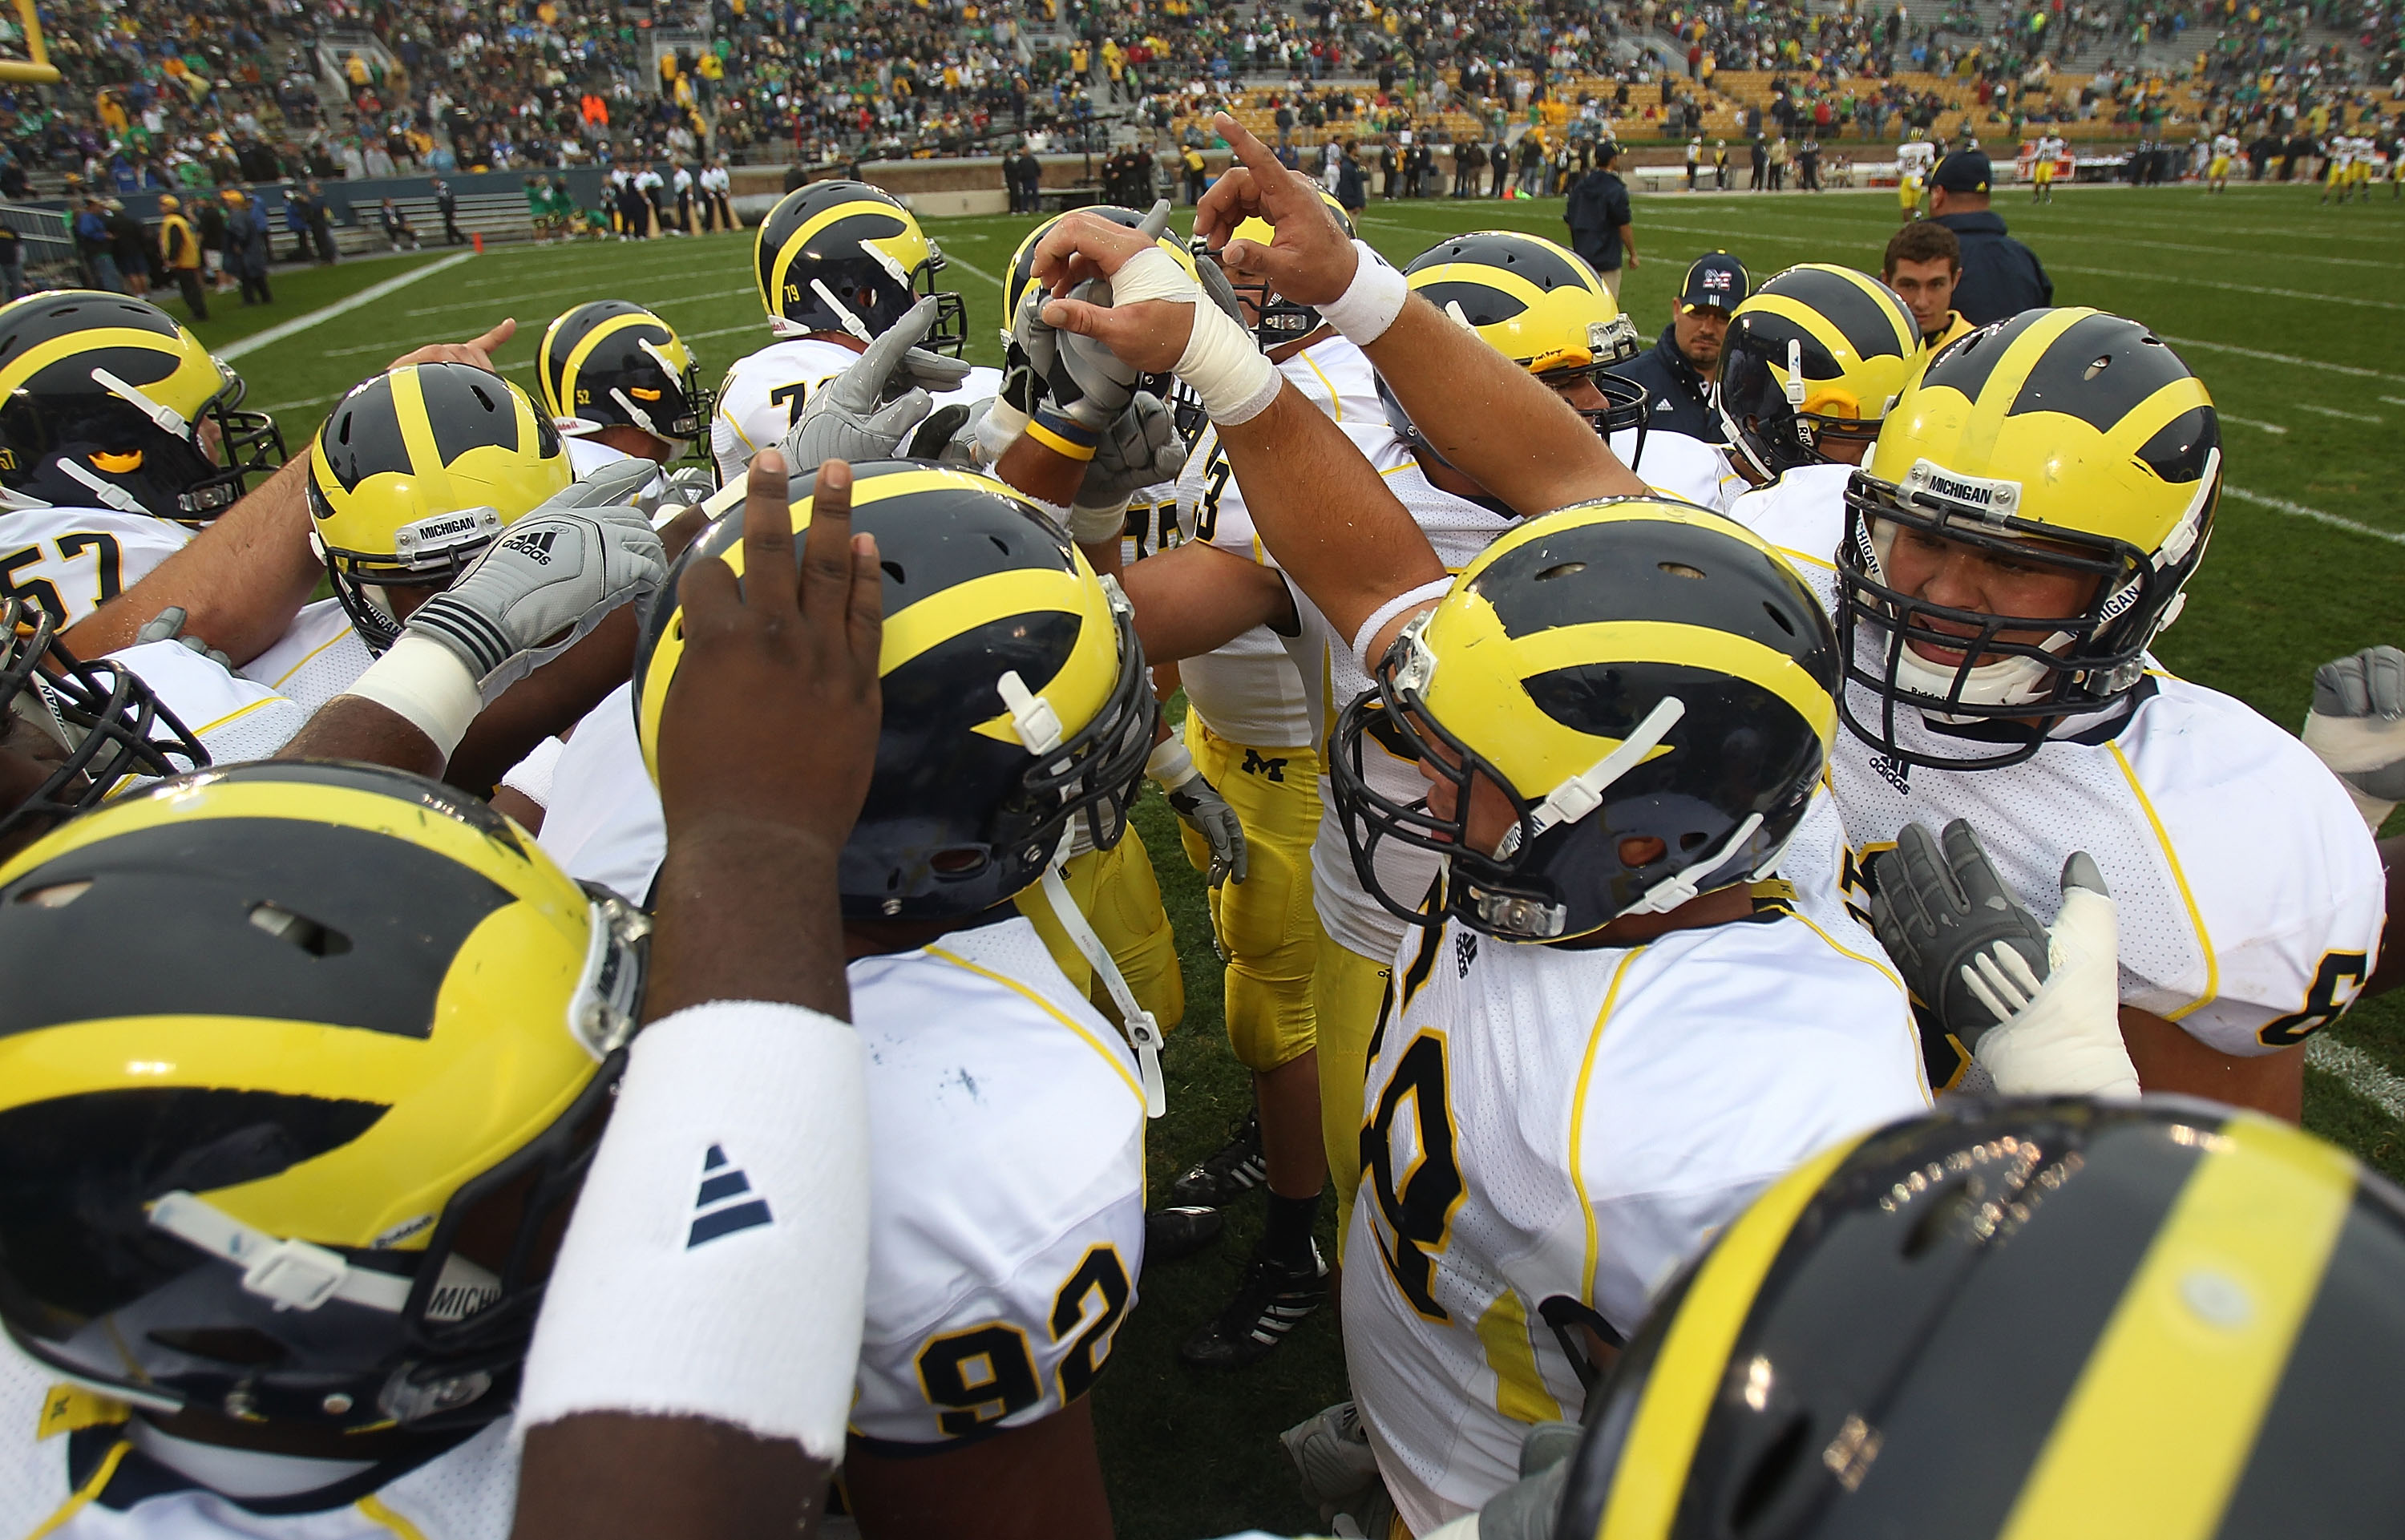 SOUTH BEND, IN - SEPTEMBER 11: Members of the Michigan Wolverines get ready during warm-ups to play against the Notre Dame Fighting Irish at Notre Dame Stadium on September 11, 2010 in South Bend, Indiana. Michigan defeated Notre Dame 28-24.  (Photo by Jo